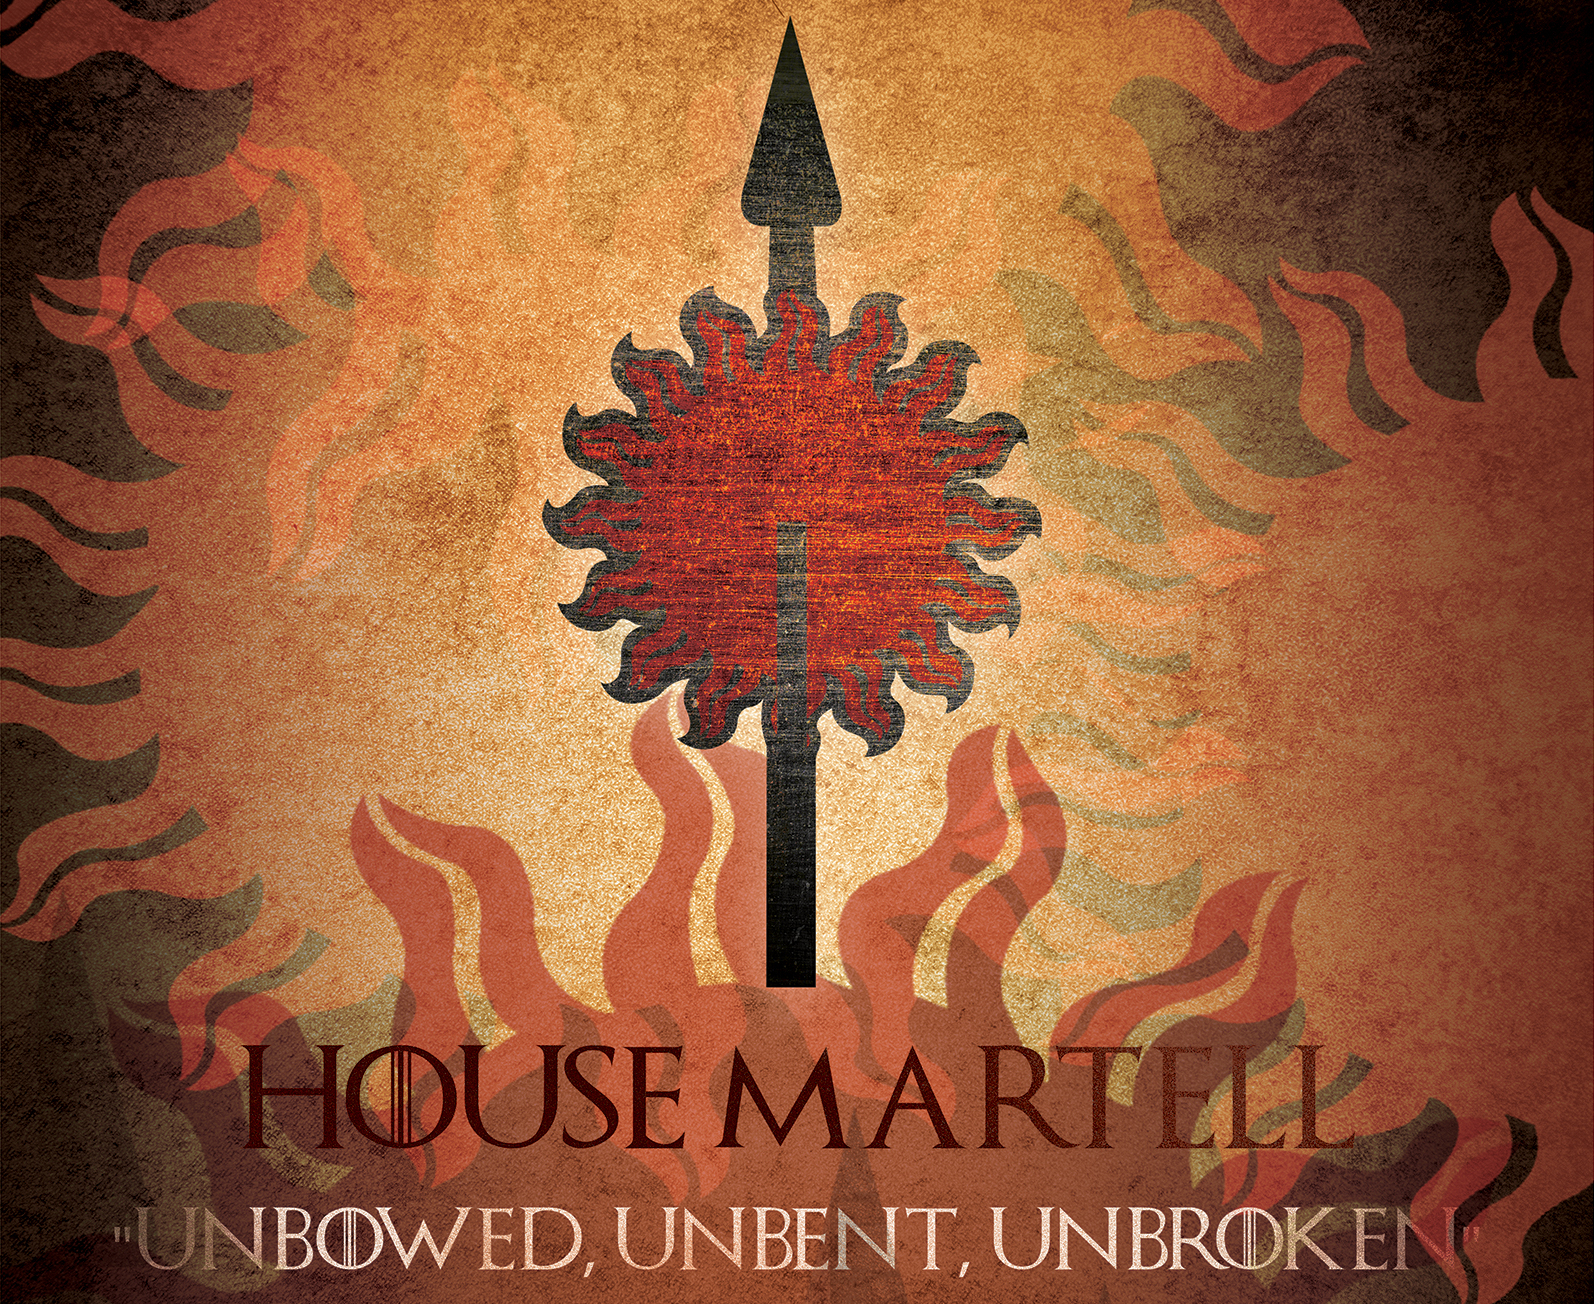 House Martell facts